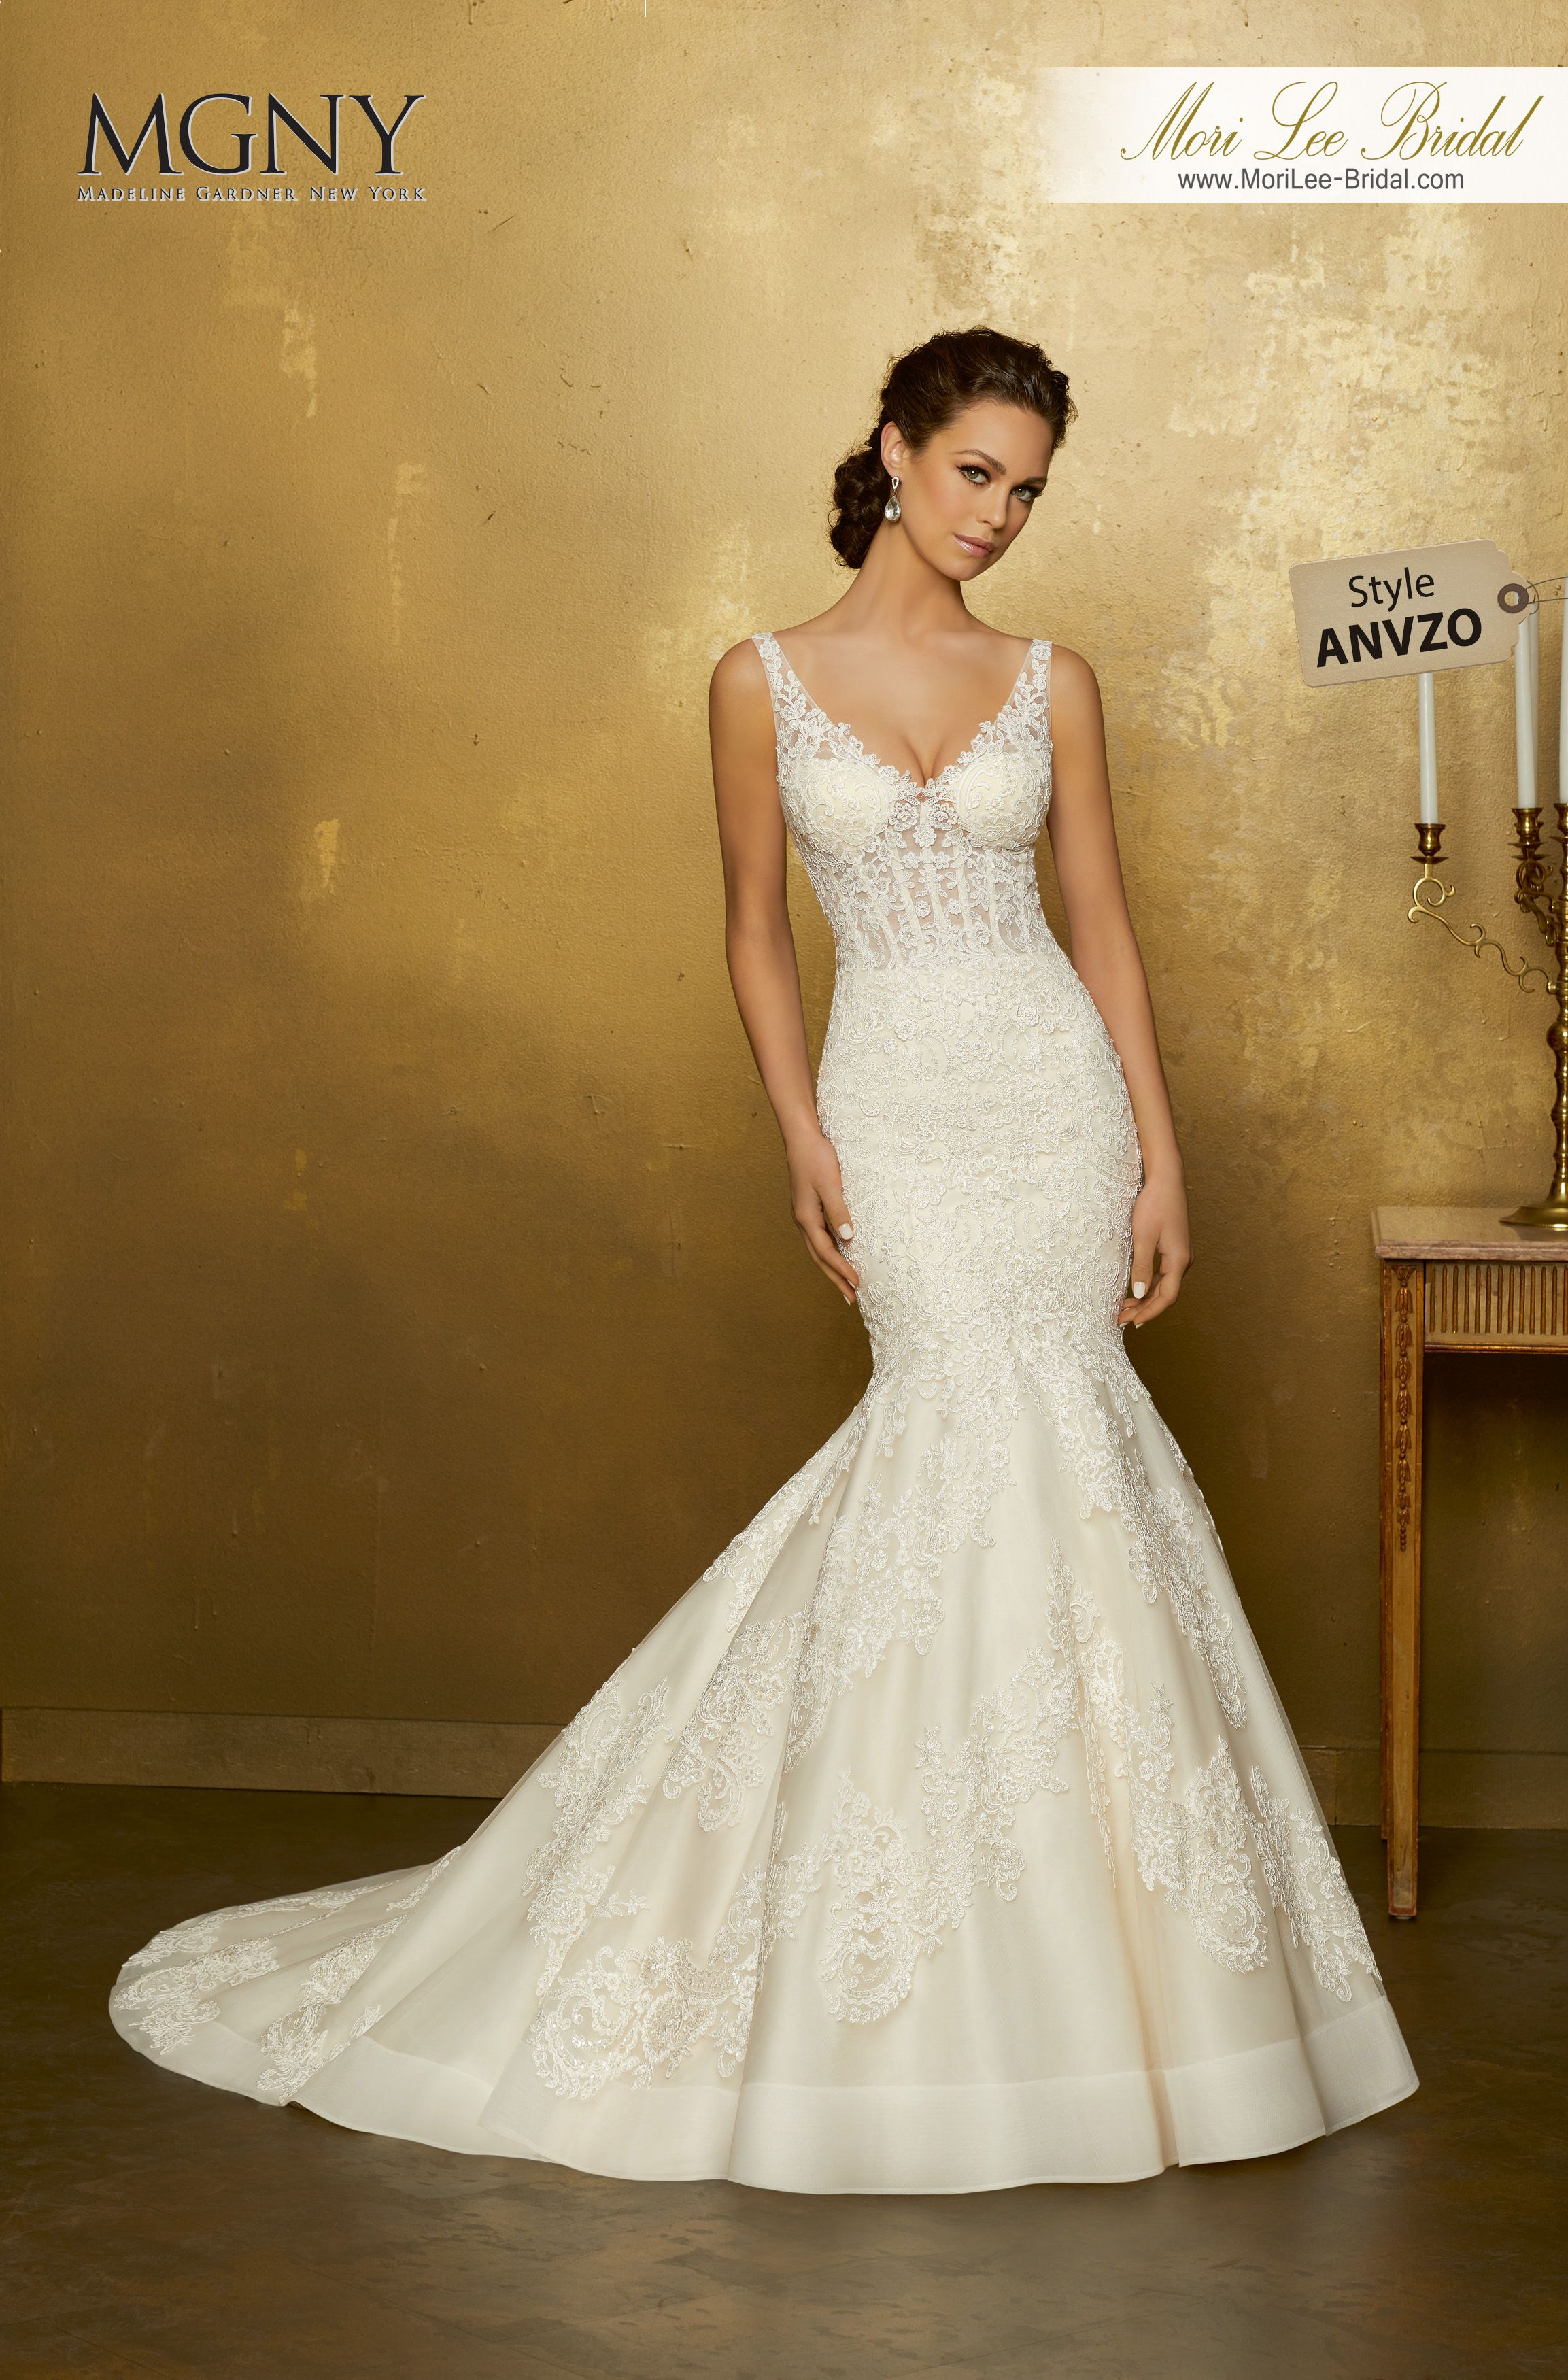 Style ANVZOOrpheaFrosted, re-embroidered lace appliqués on a tulle ...